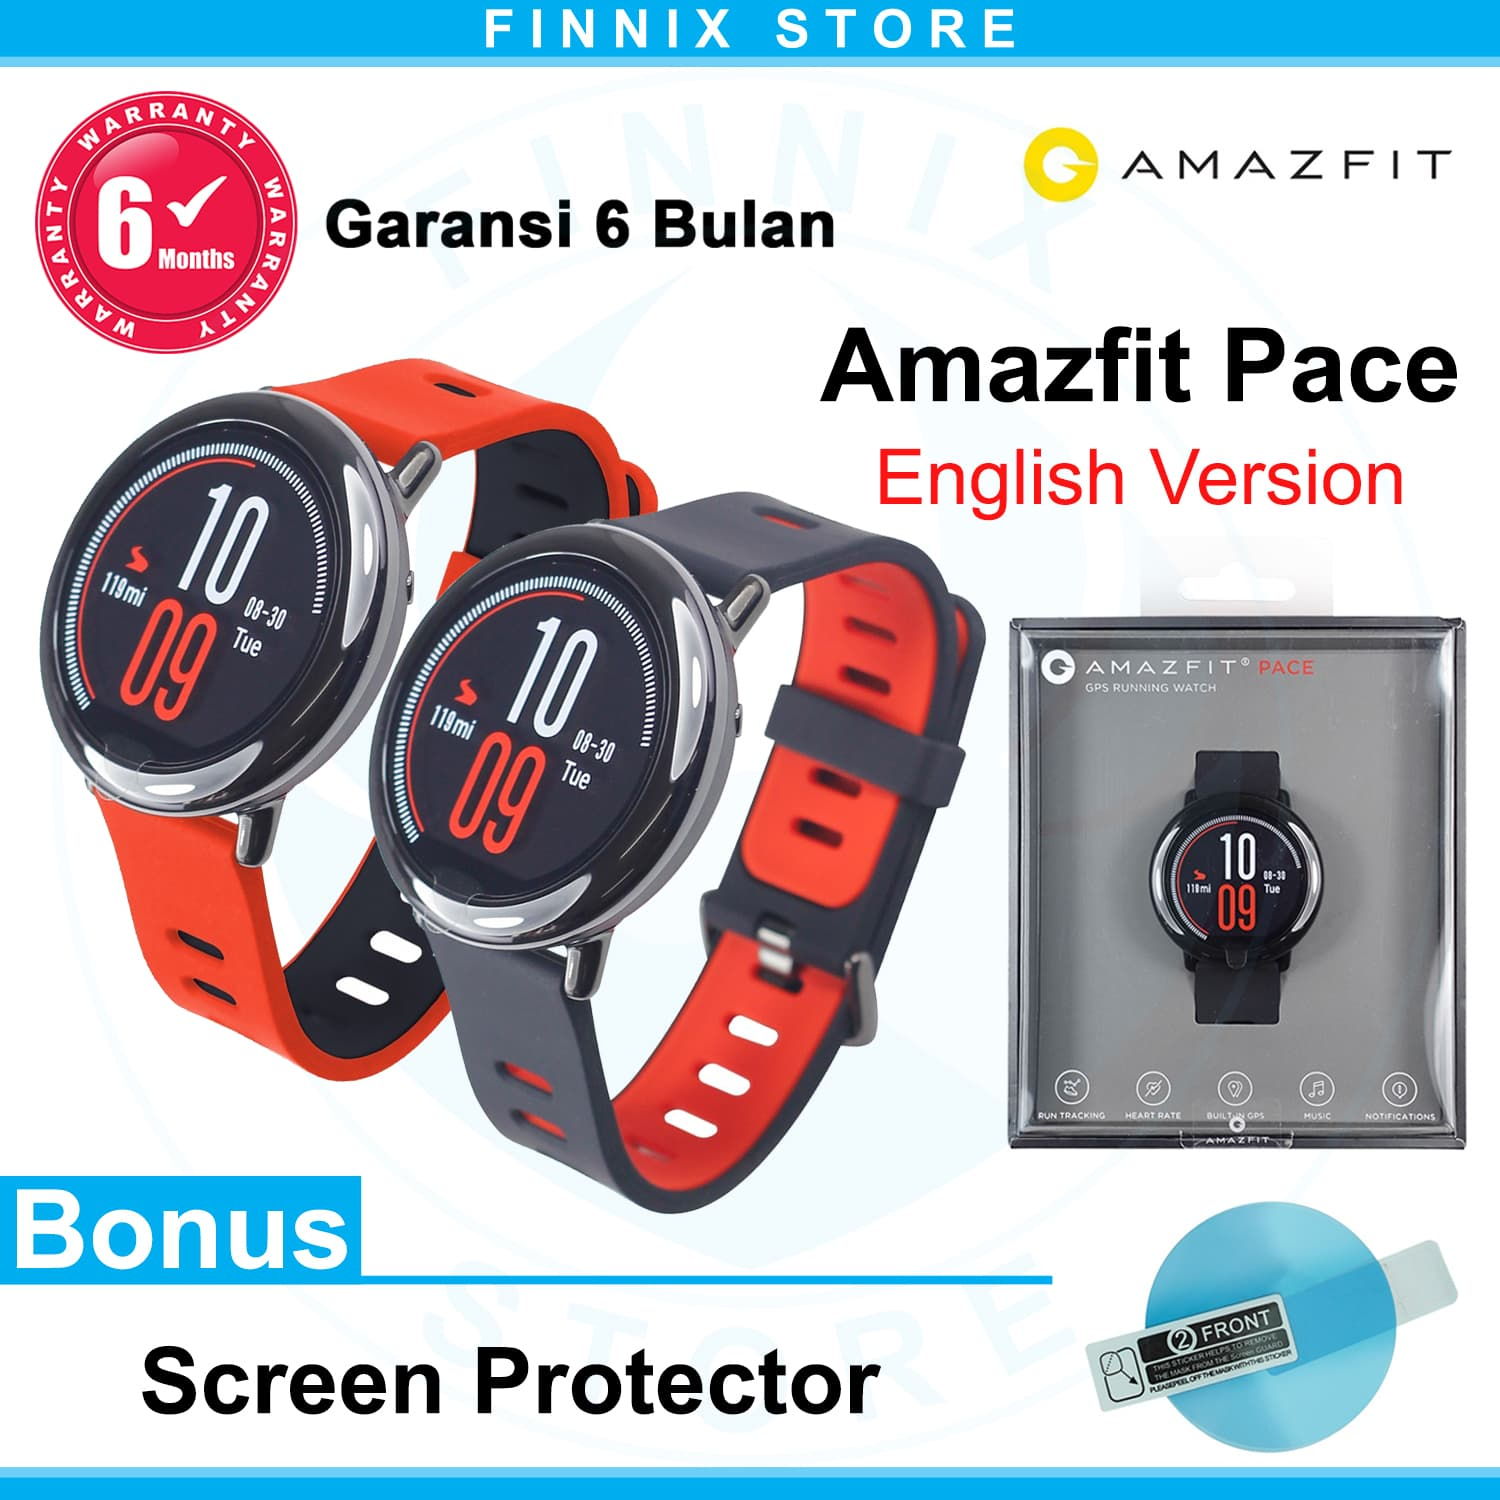 Xiaomi Amazfit Smartwatch International Version With Gps And Heart Huami Cor Hitam Jual Pace English Merah Finnix Store